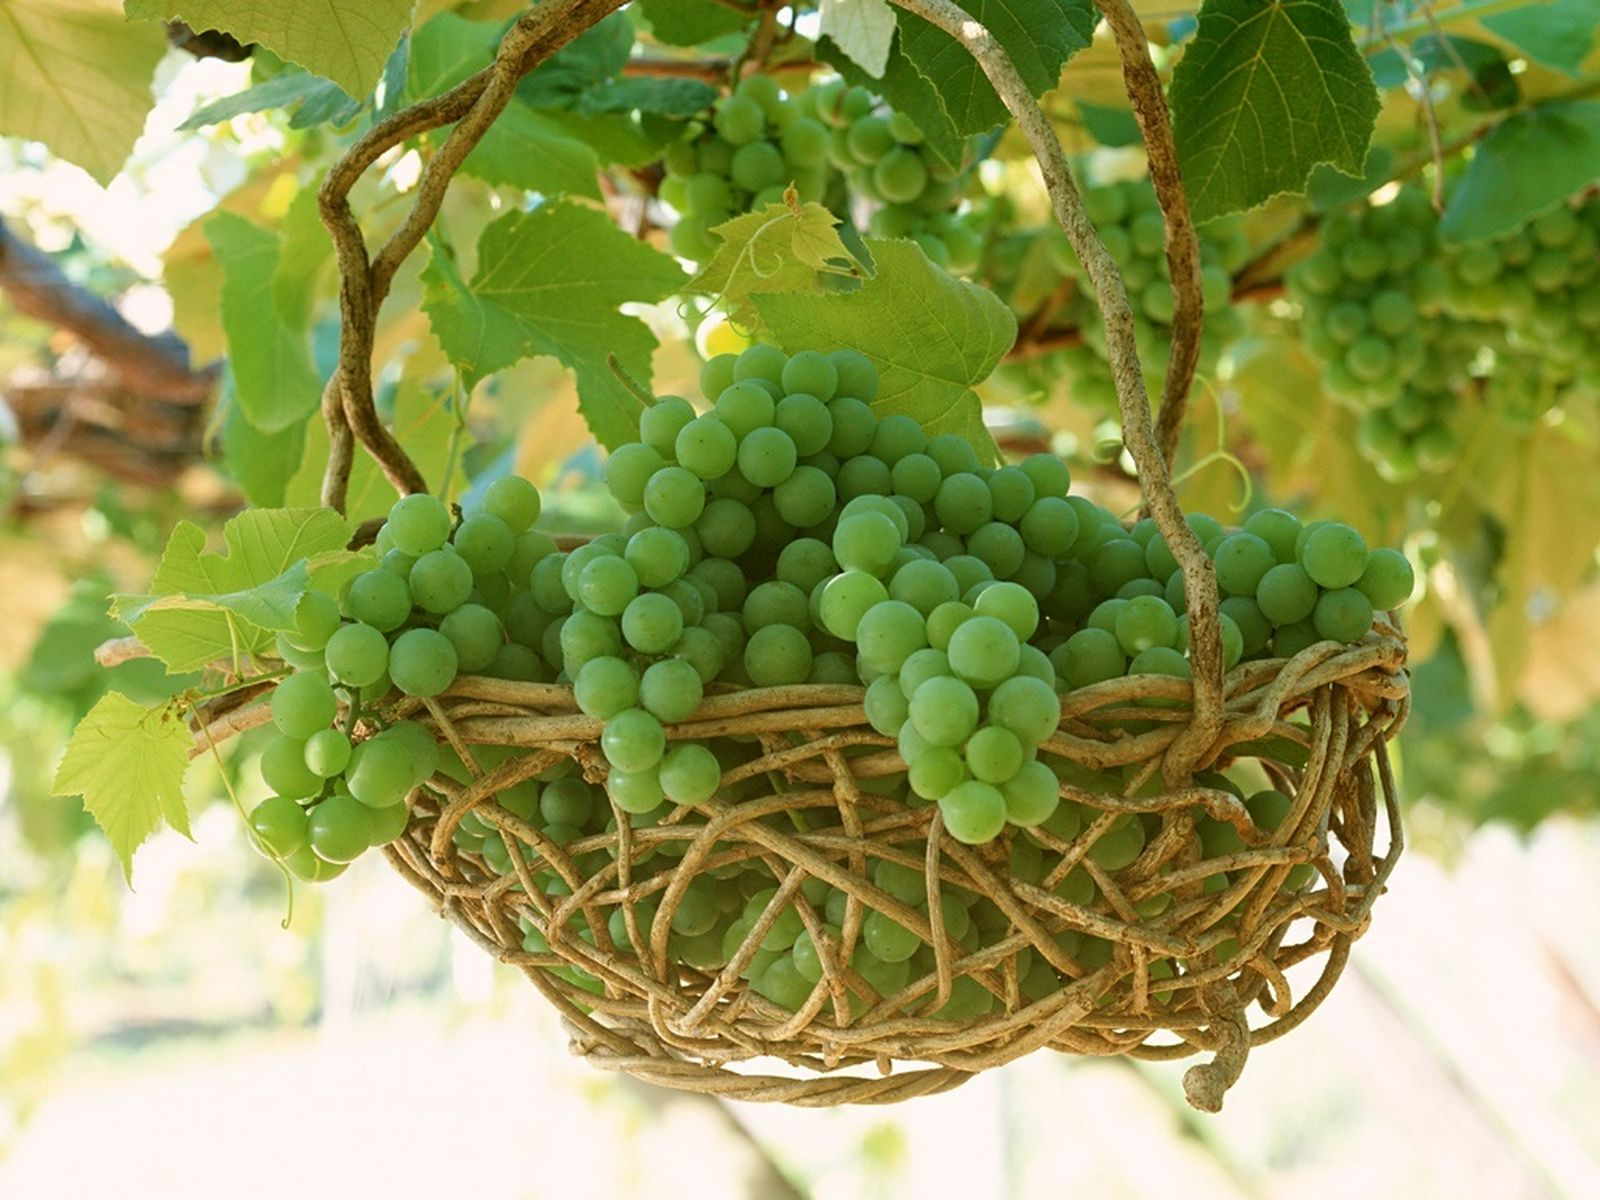 Fresh juice and fruits in hd photos cute babies photos collection - Round Green Grapes